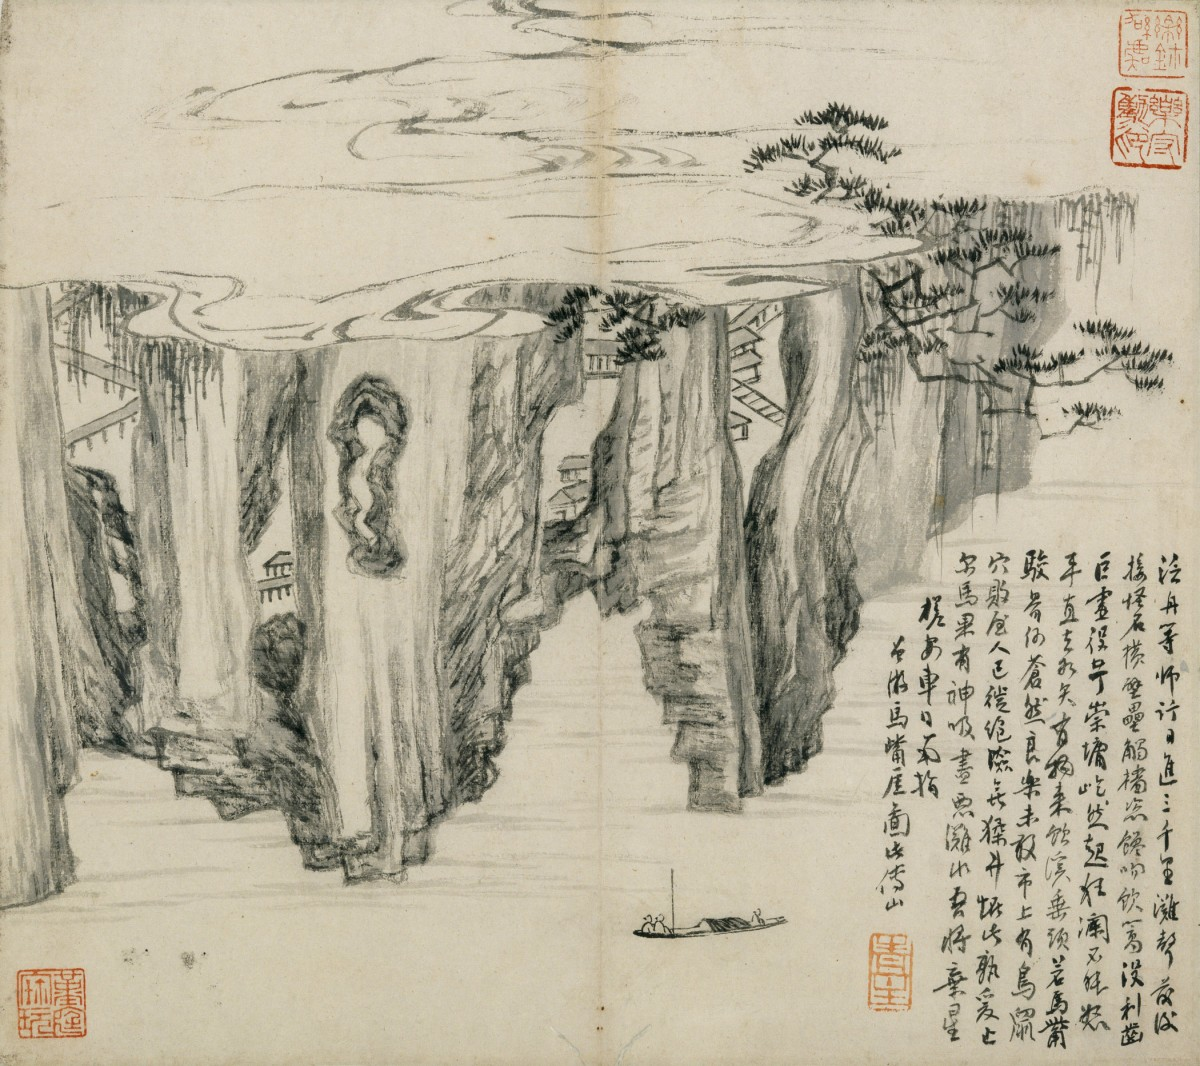 Image: Fu Shan, Horsemouth Cliff, from the album, Landscapes, 1602-1683